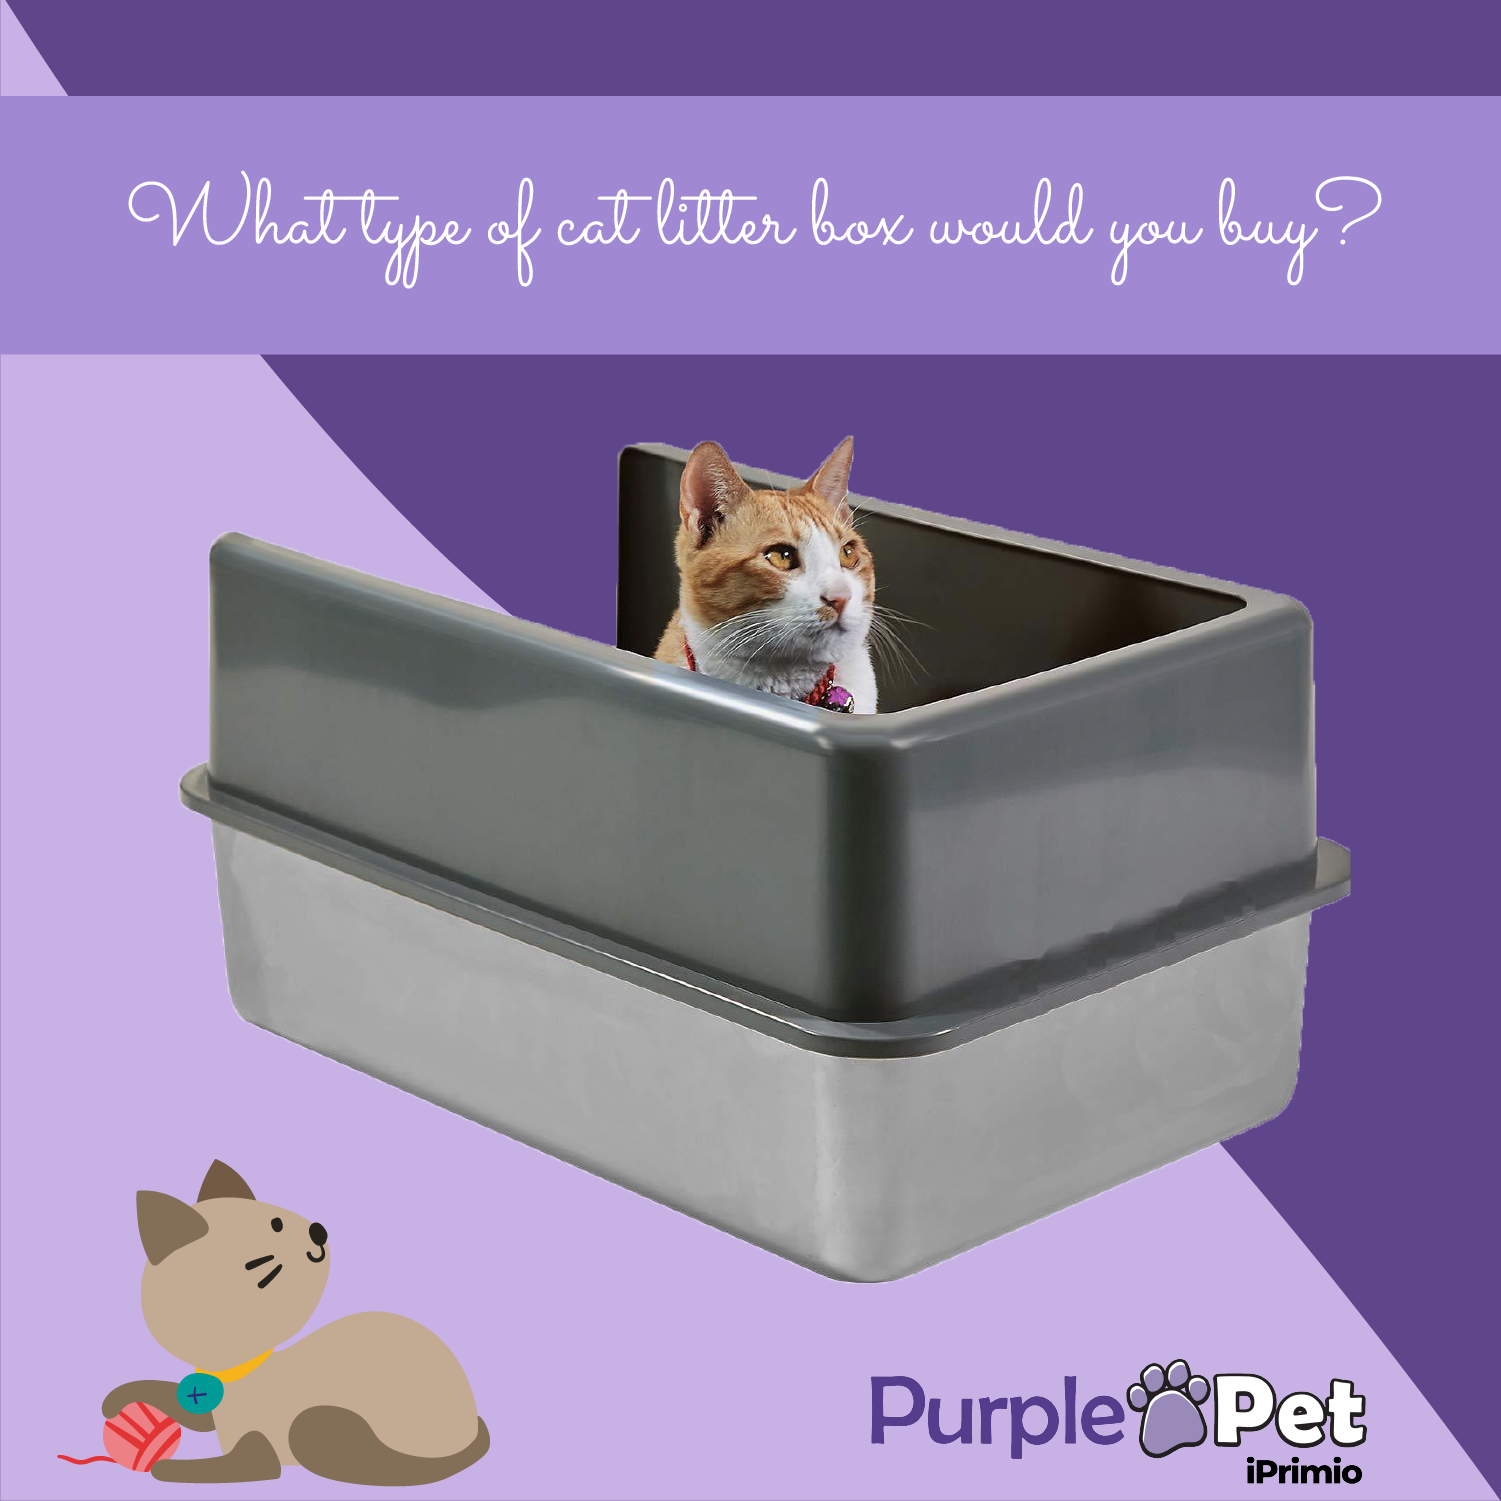 Where can I Find Good Litter Box Covers for Cats